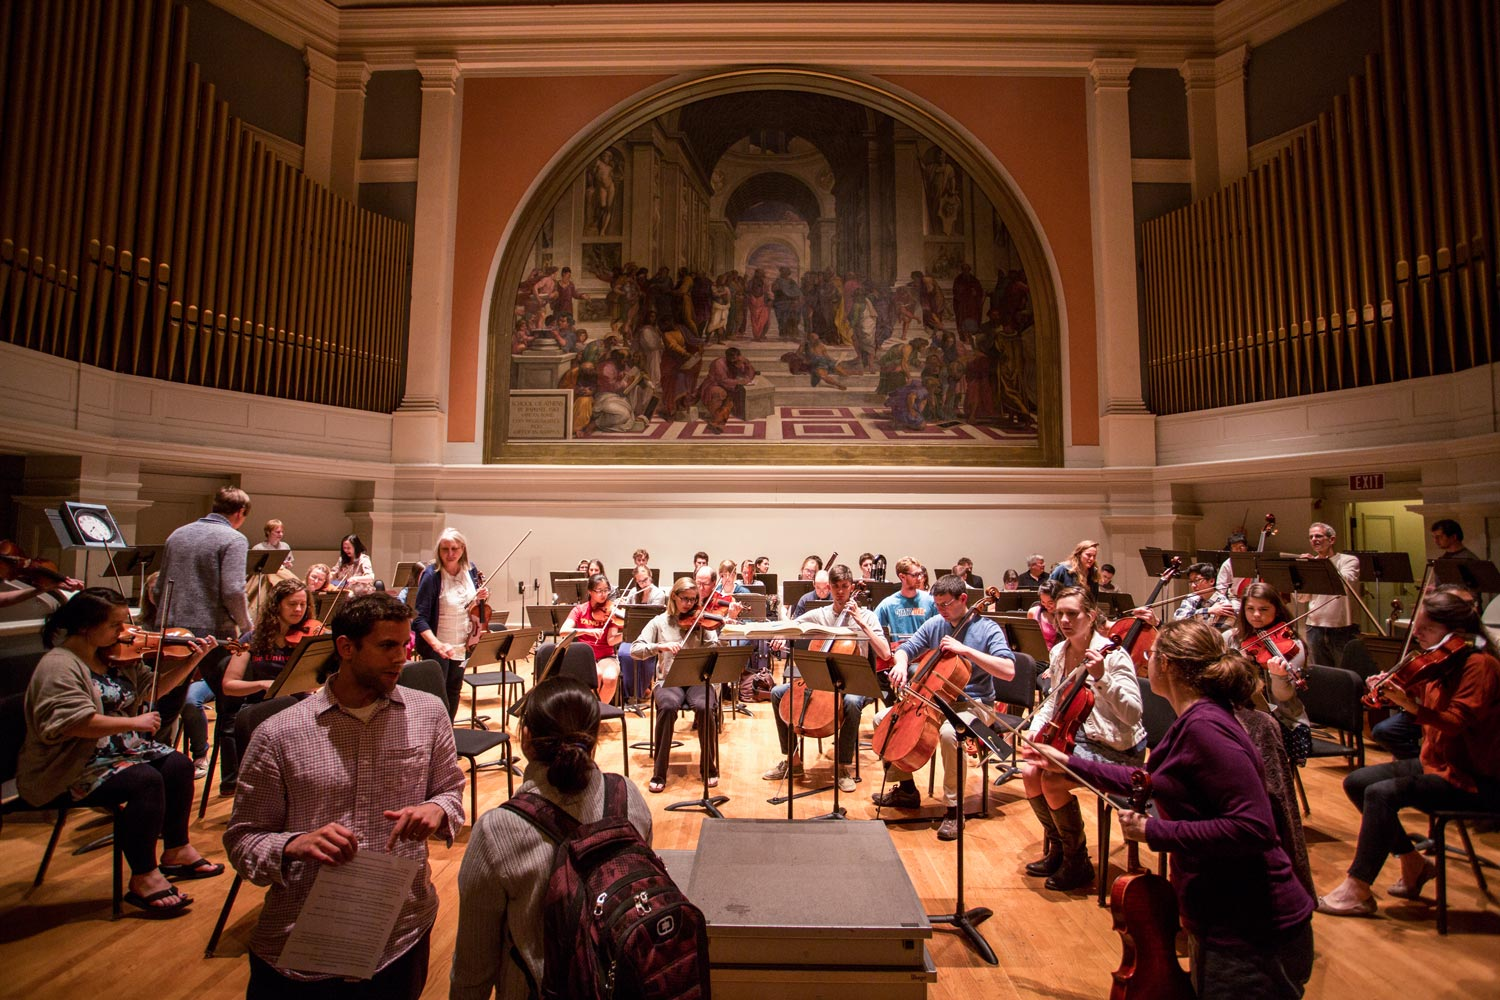 """Old Cabell Hall Auditorium is one of three state performance spaces to make the list of """"Best University Performing Arts Centers in the U.S."""""""